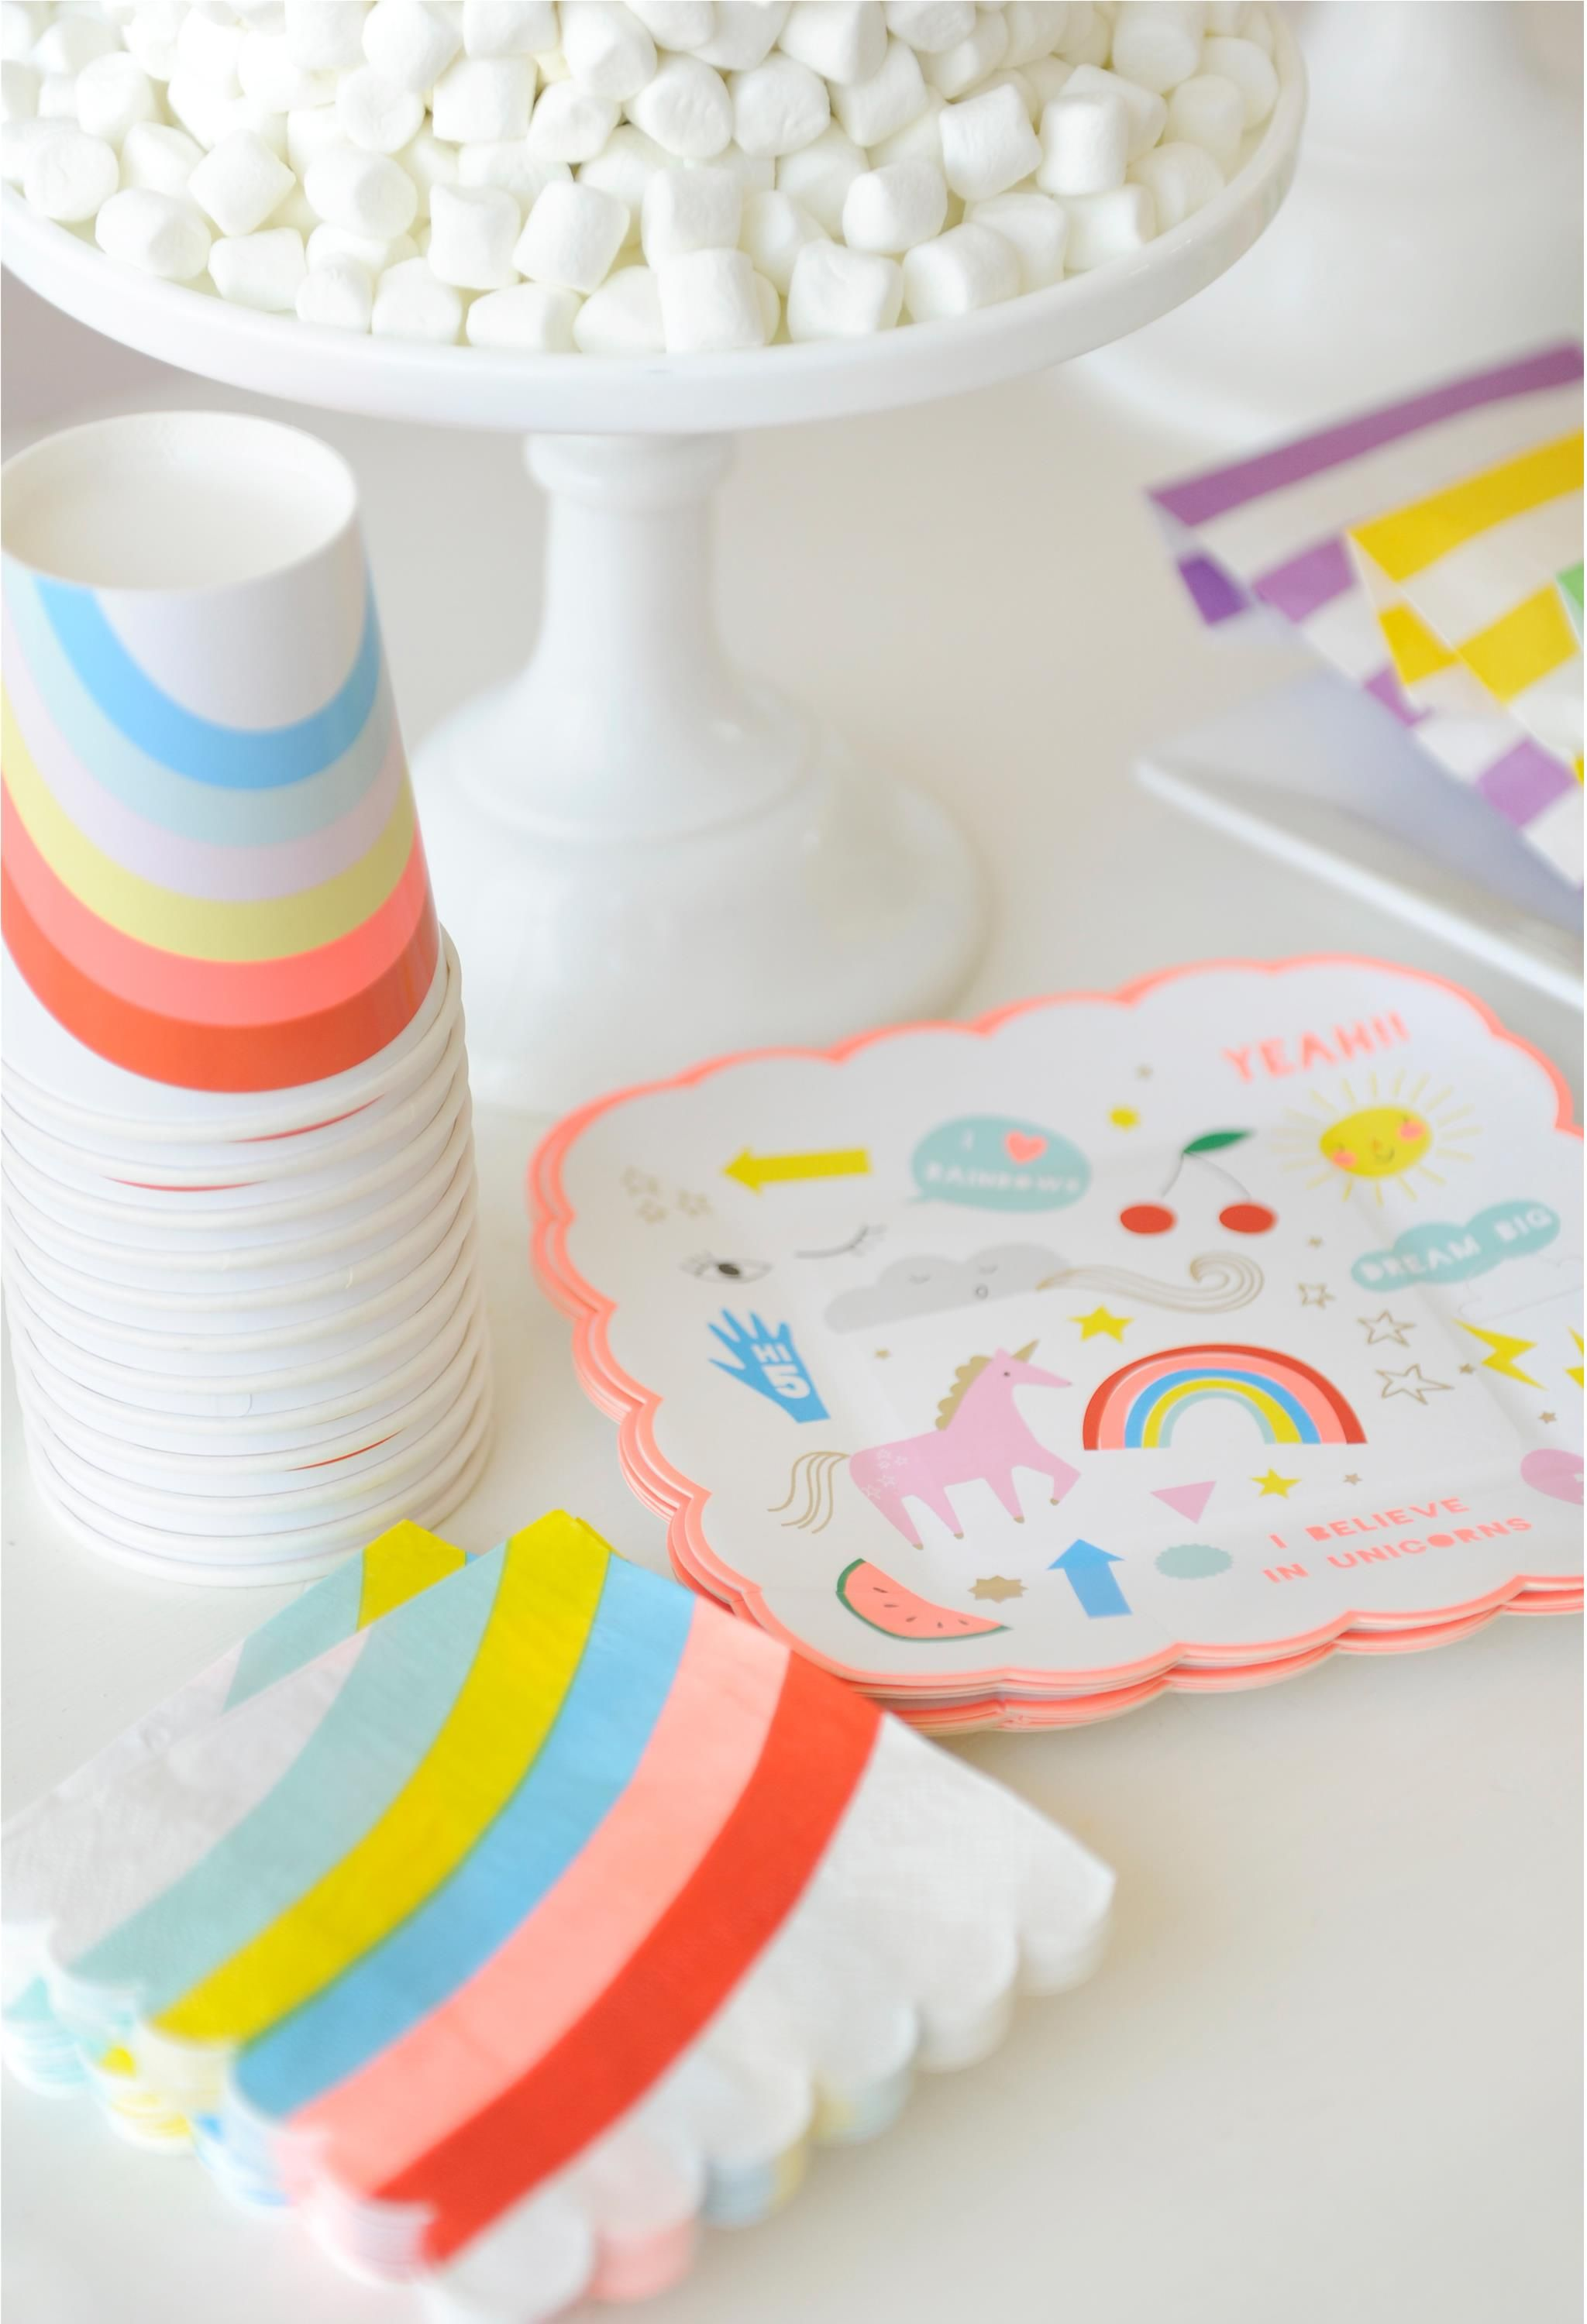 Project Nursery - Over the Rainbow Party for Kids Magical Kids Birthday Party